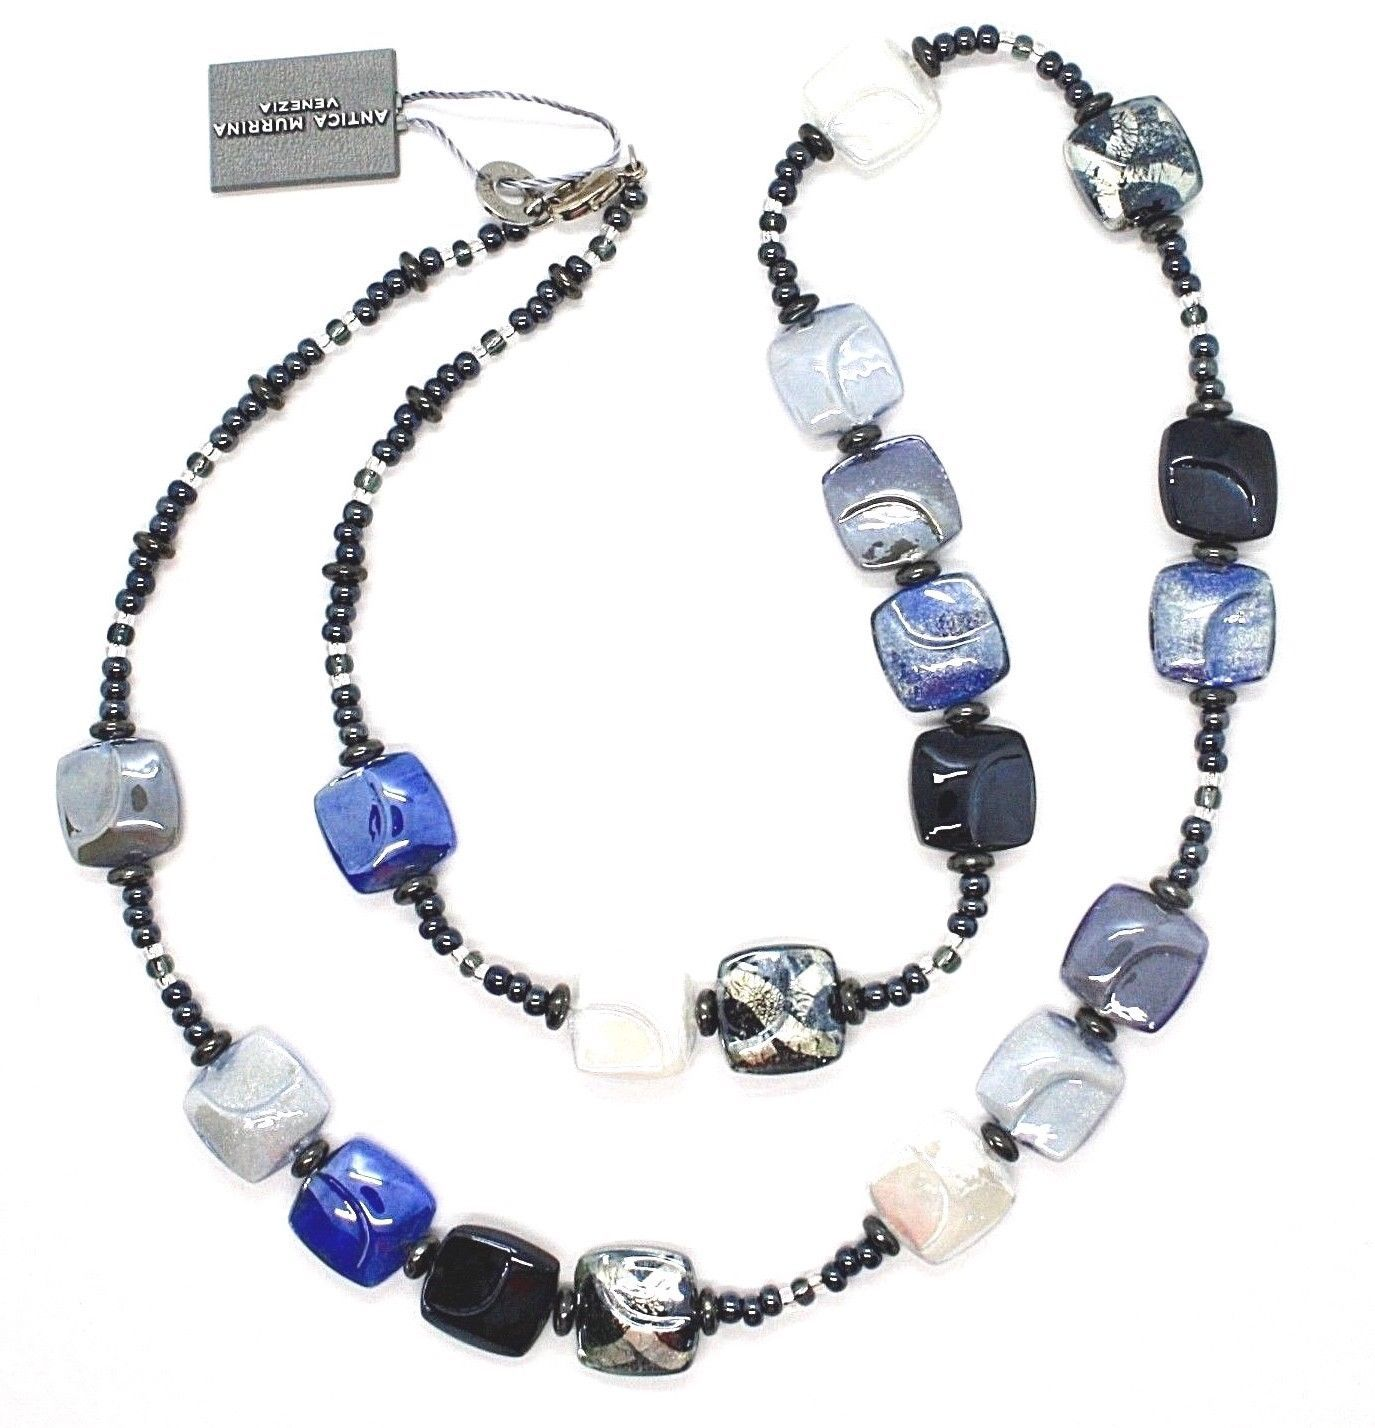 NECKLACE ANTICA MURRINA VENEZIA WITH MURANO GLASS BLUE GREY LIGHT BLUE CO987A06